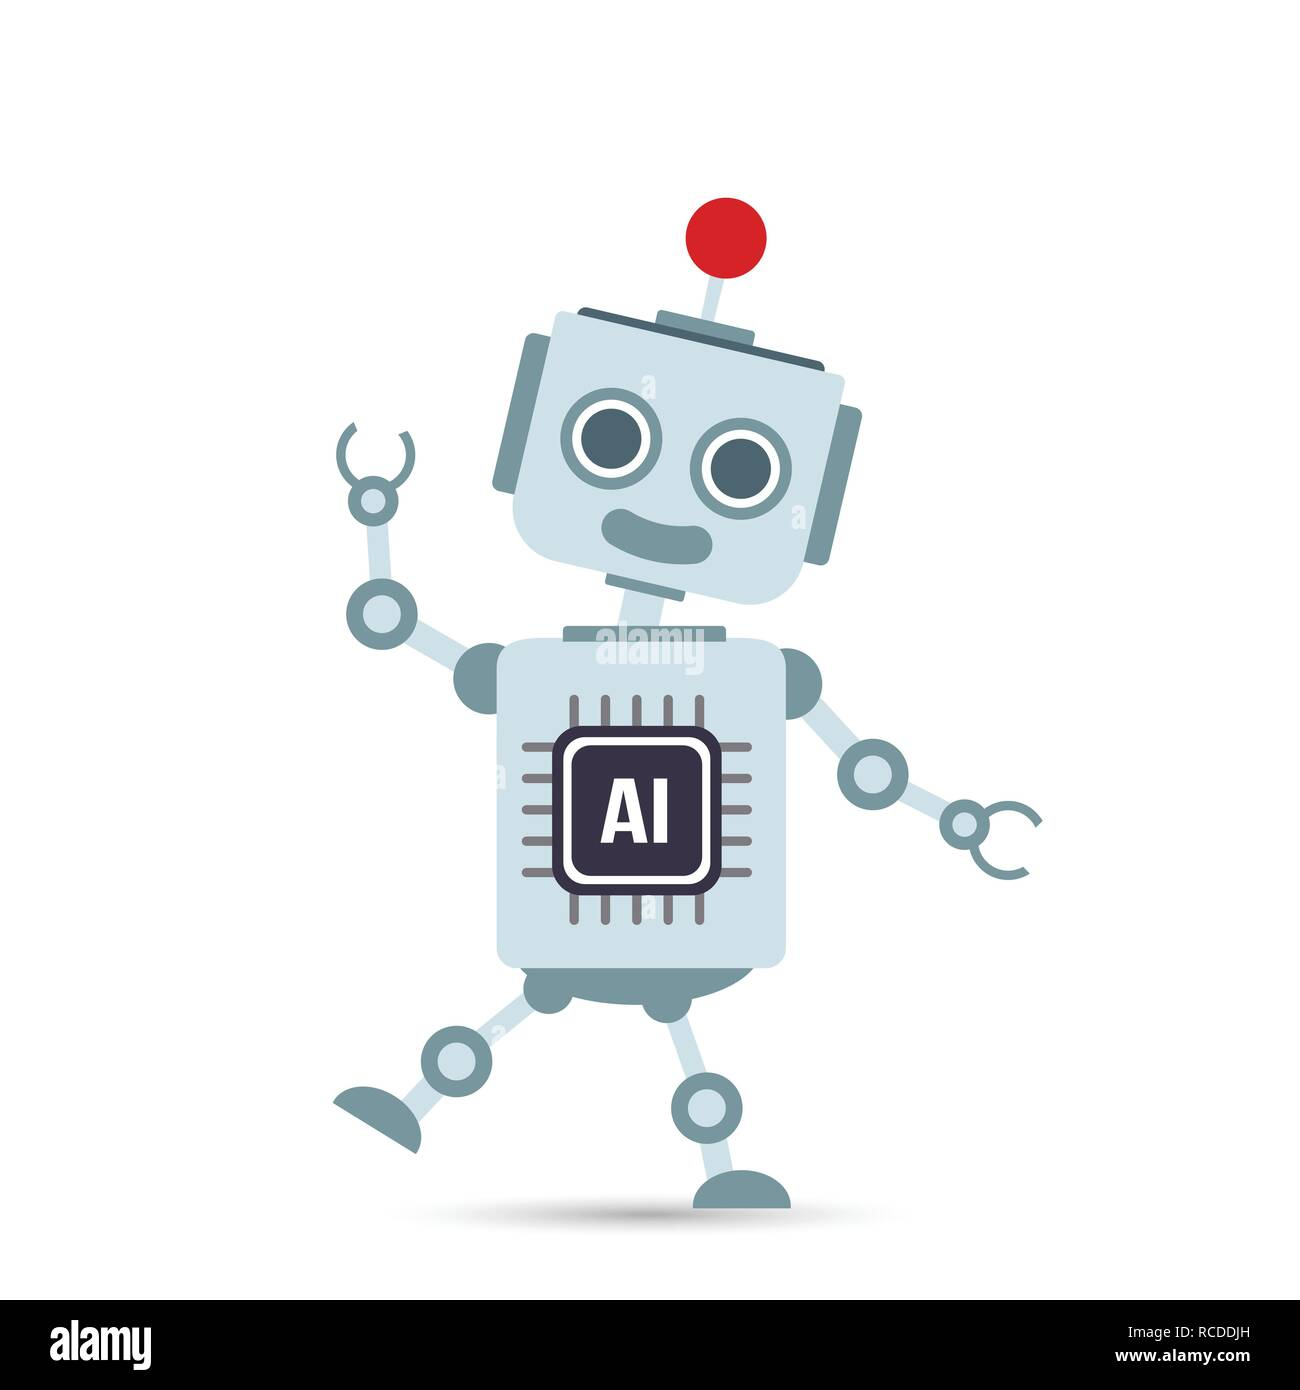 AI Künstliche Intelligenz Roboter cartoon Design Element vector eps Abbildung 10 Stock Vektor